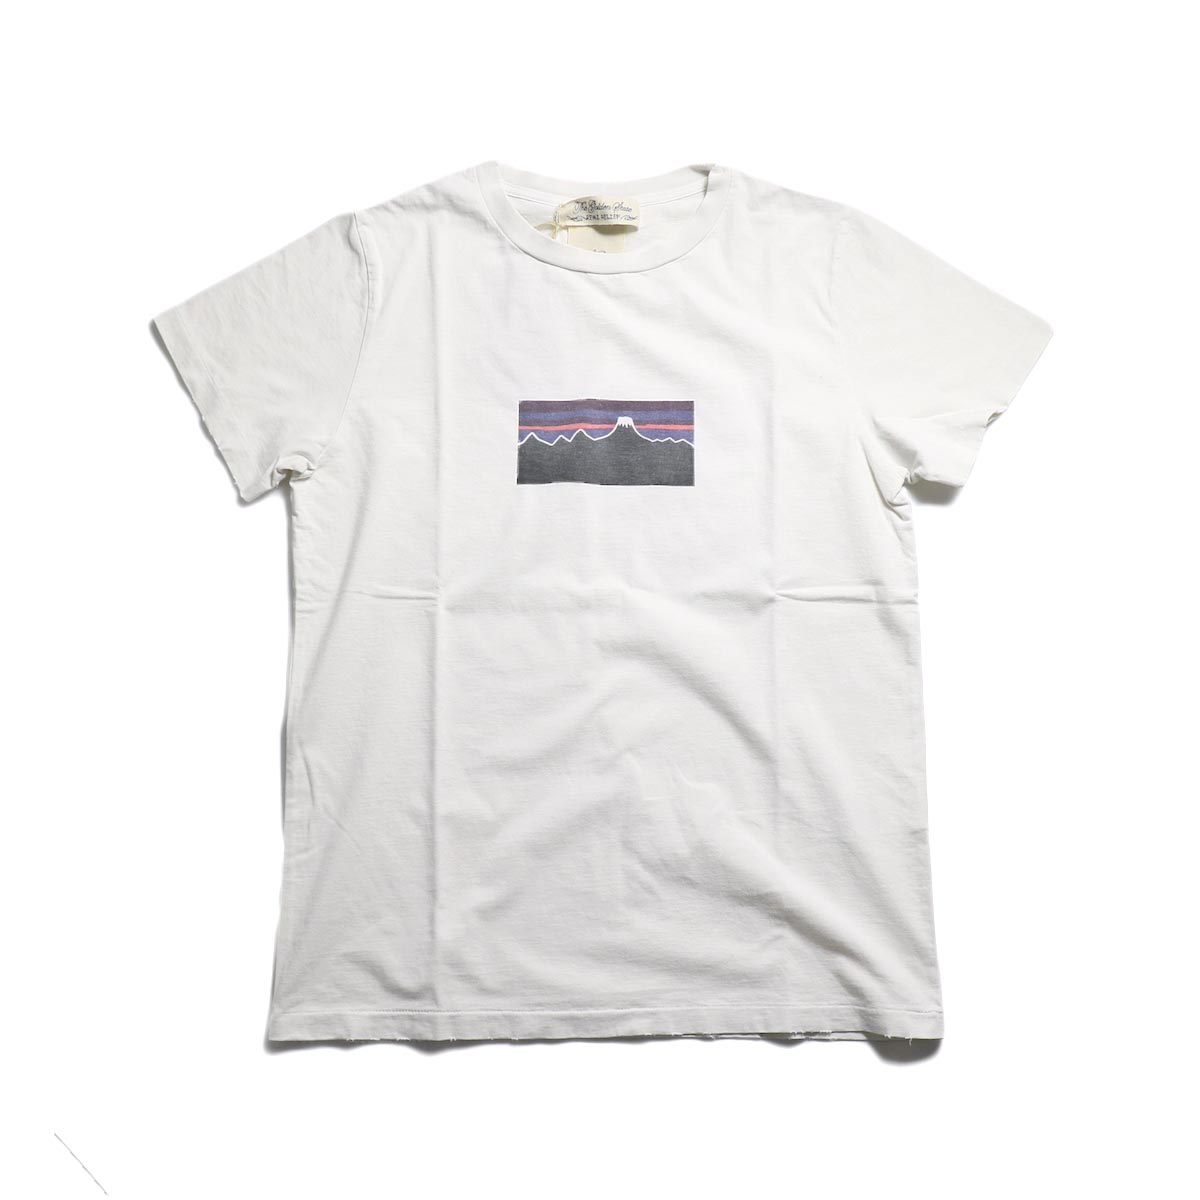 REMI RELIEF / SP加工T (富士山) -Off White